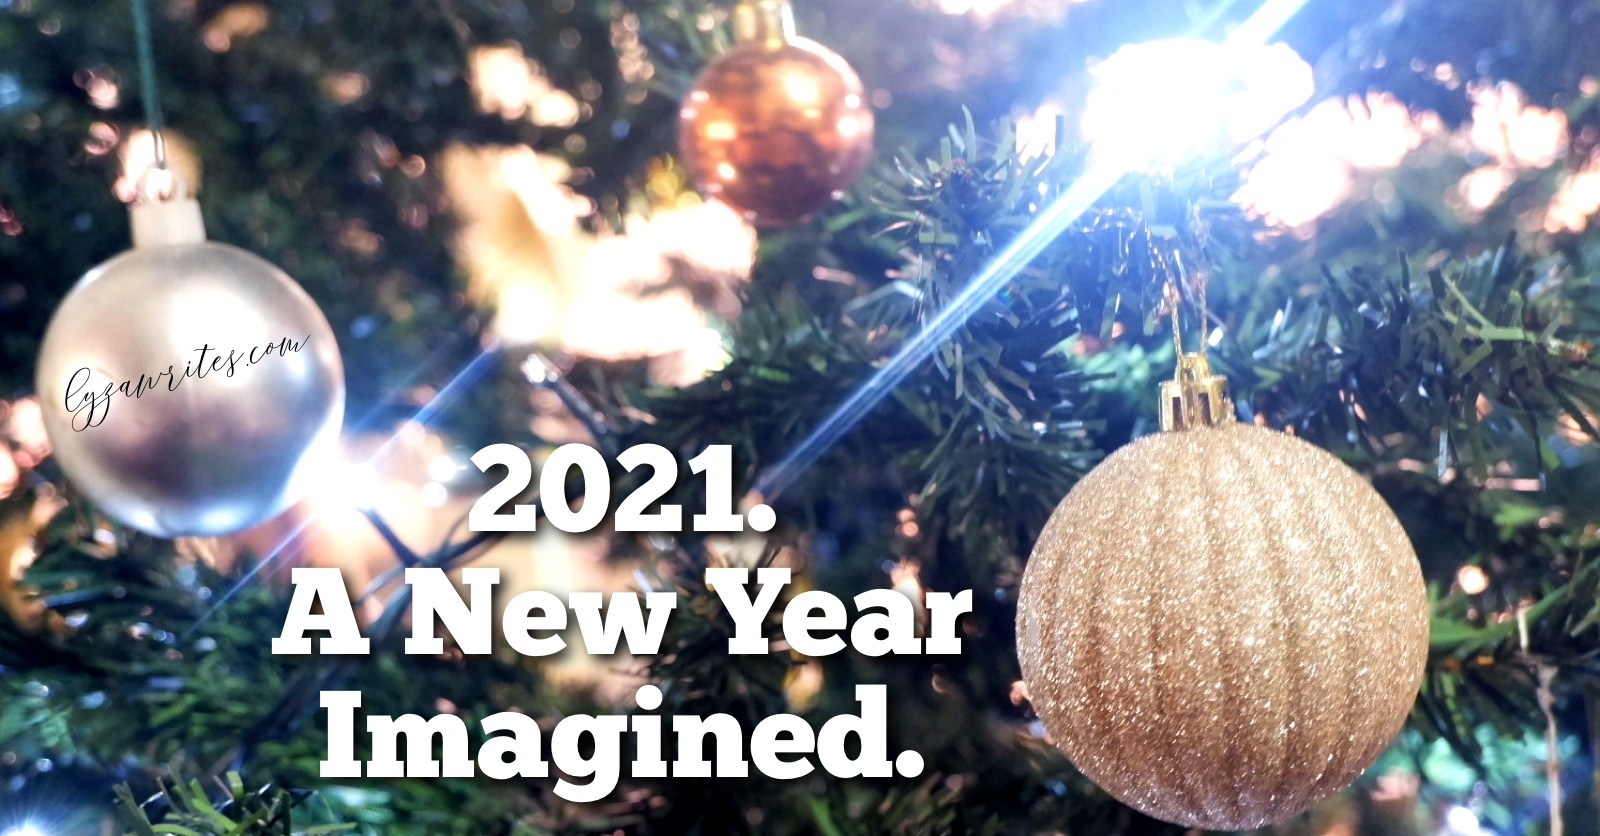 2021. A New Year Imagined.